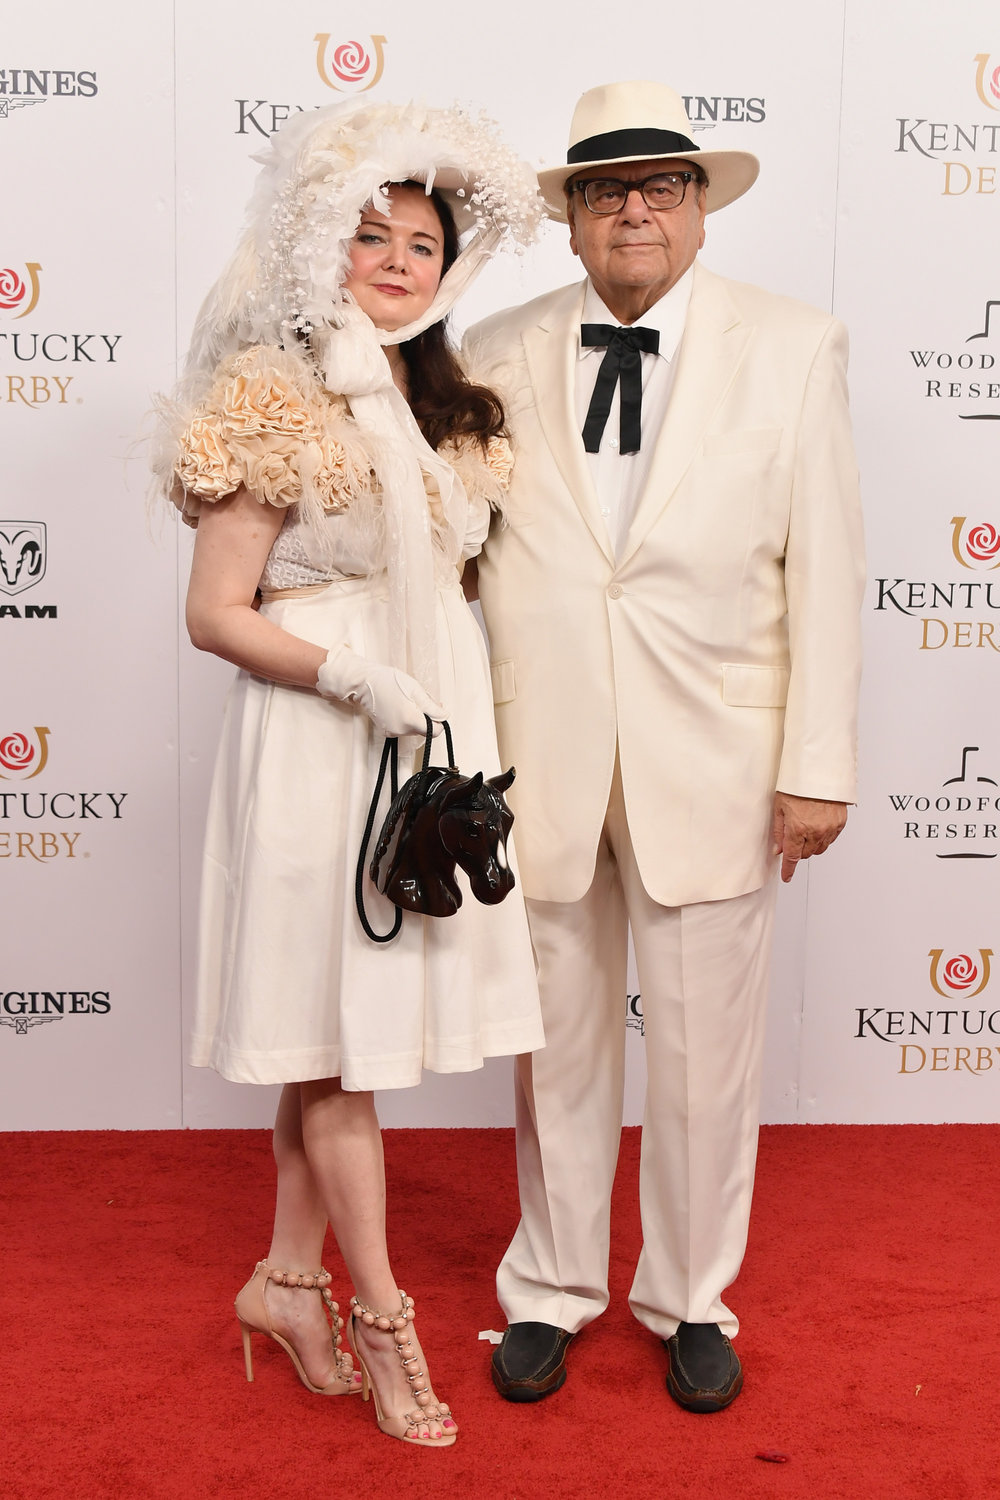 LOUISVILLE, KY - MAY 05:  Dee Dee Sorvino and Paul Sorvino attend Kentucky Derby 144 on May 5, 2018 in Louisville, Kentucky.  (Photo by Michael Loccisano/Getty Images for Churchill Downs) *** Local Caption *** Dee Dee Sorvino;Paul Sorvino